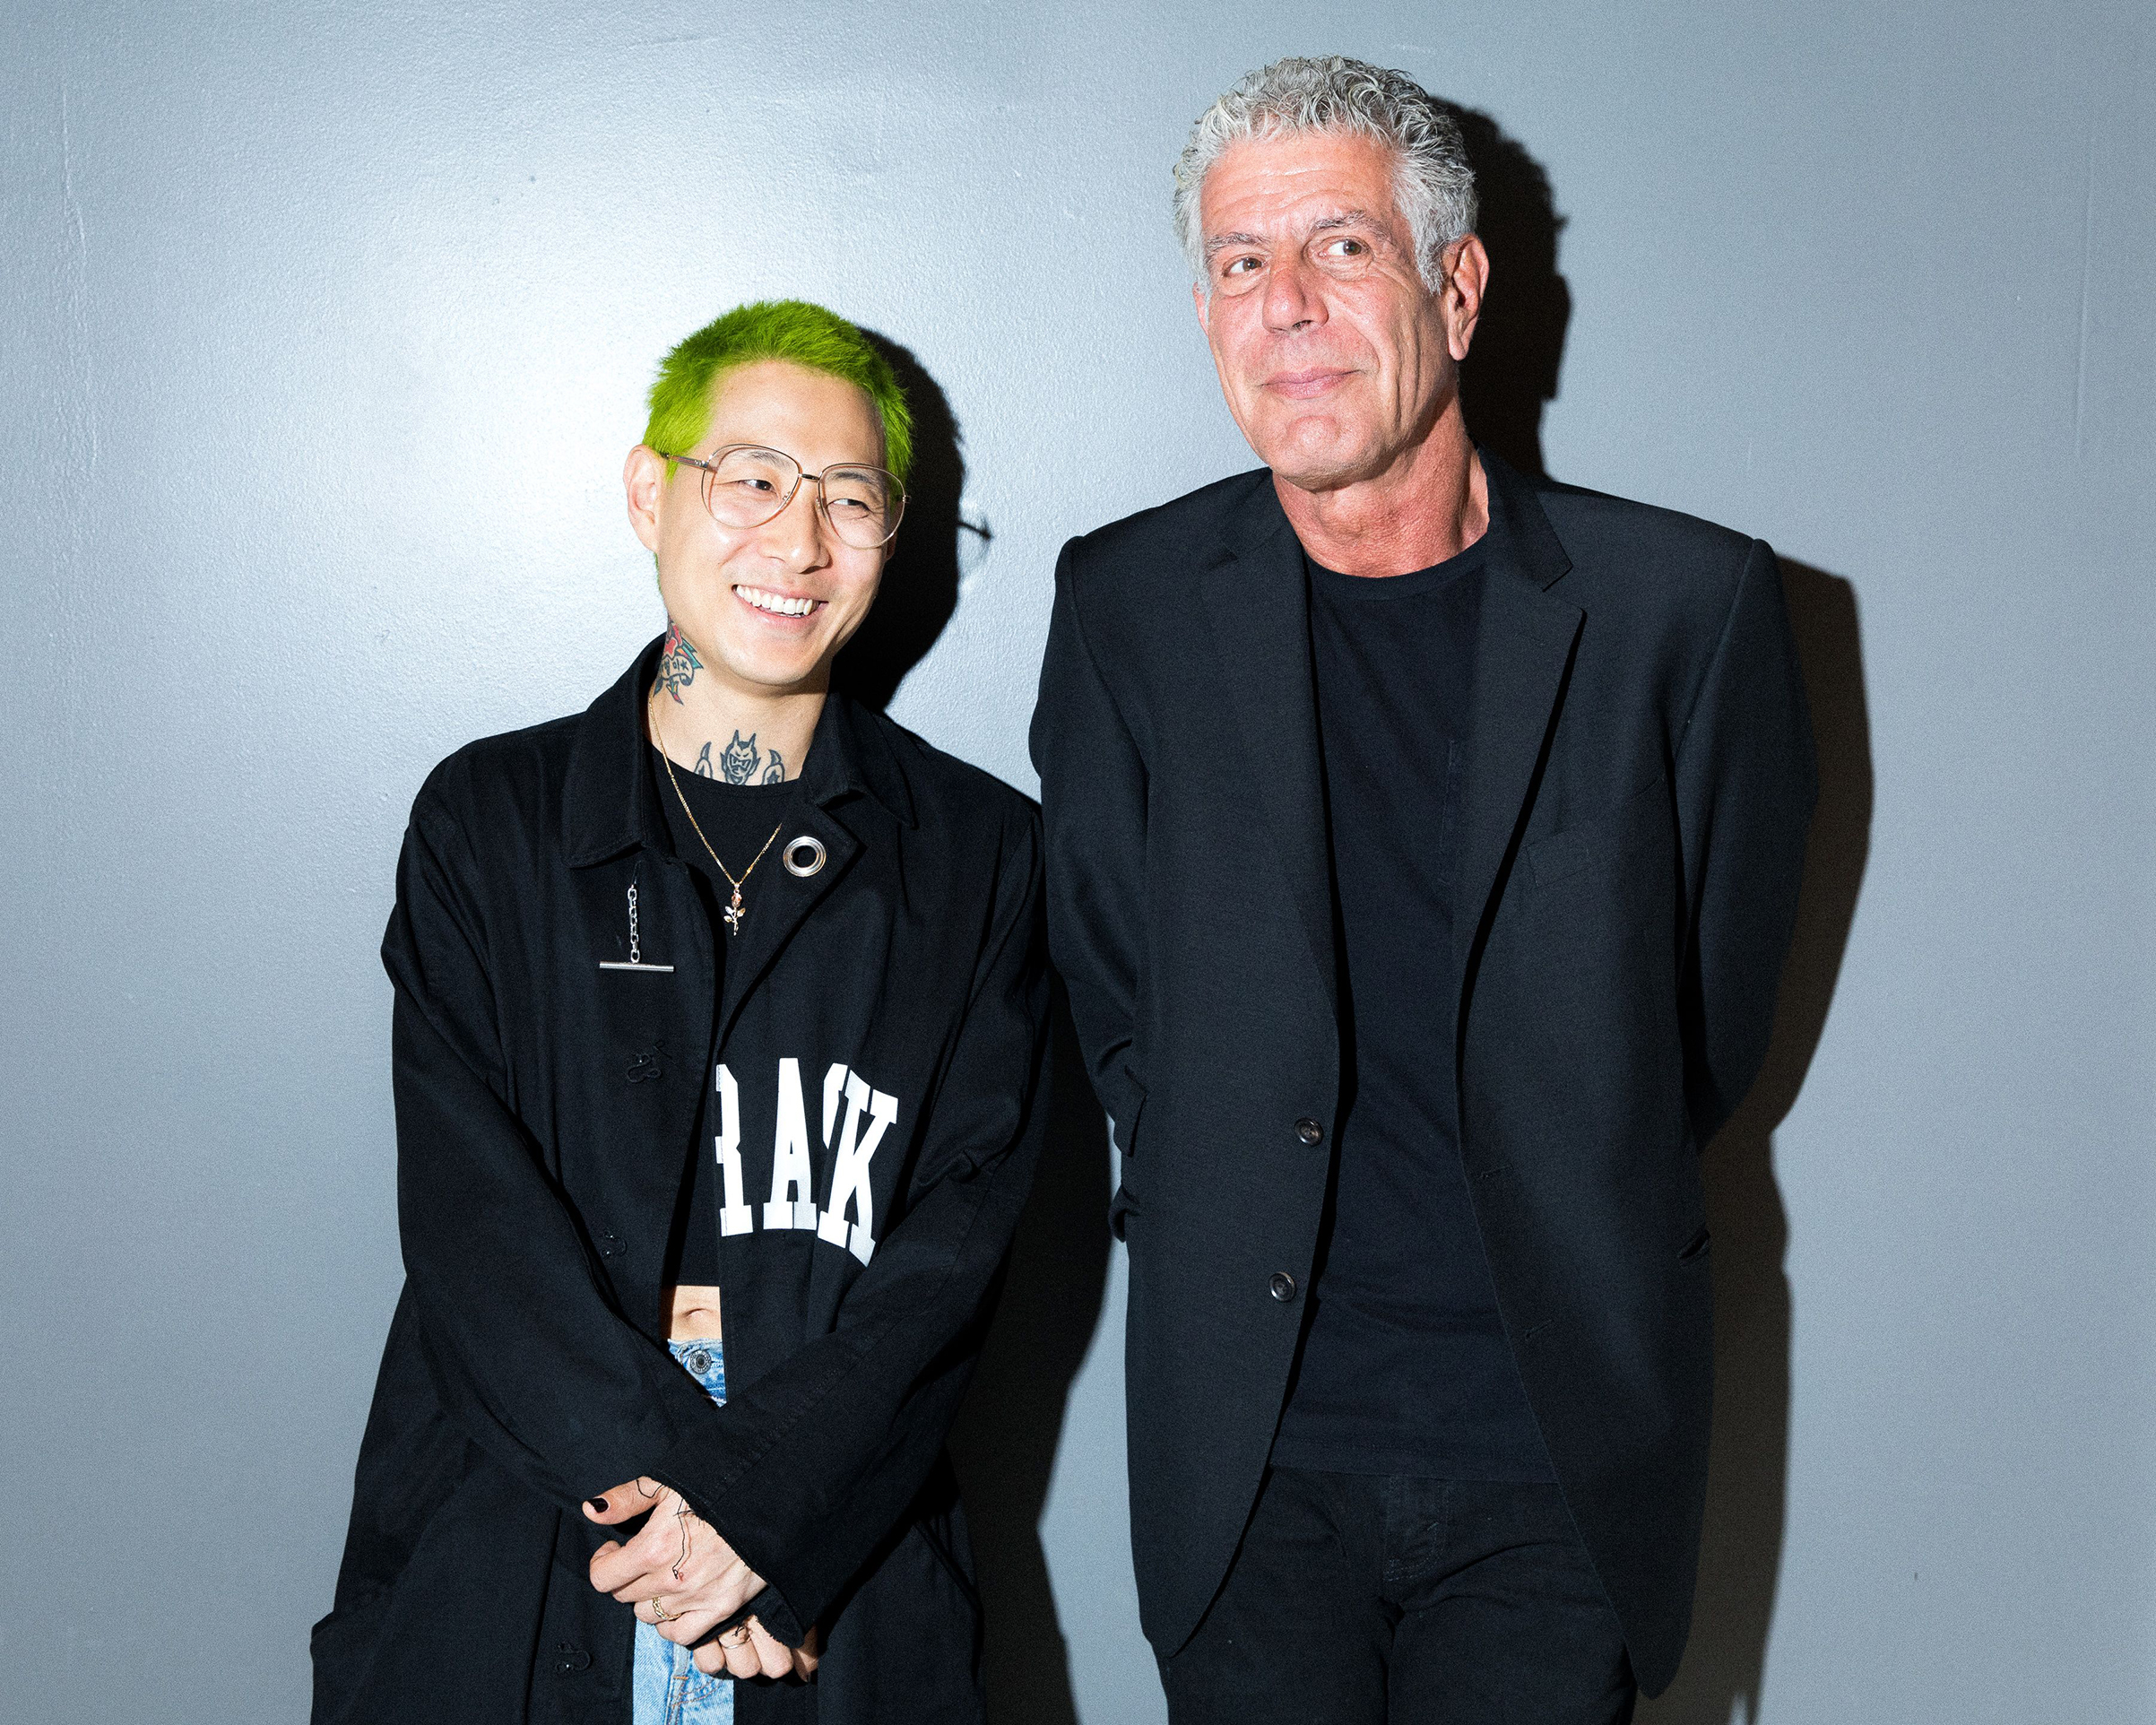 Bowien and Bourdain in October 2017.